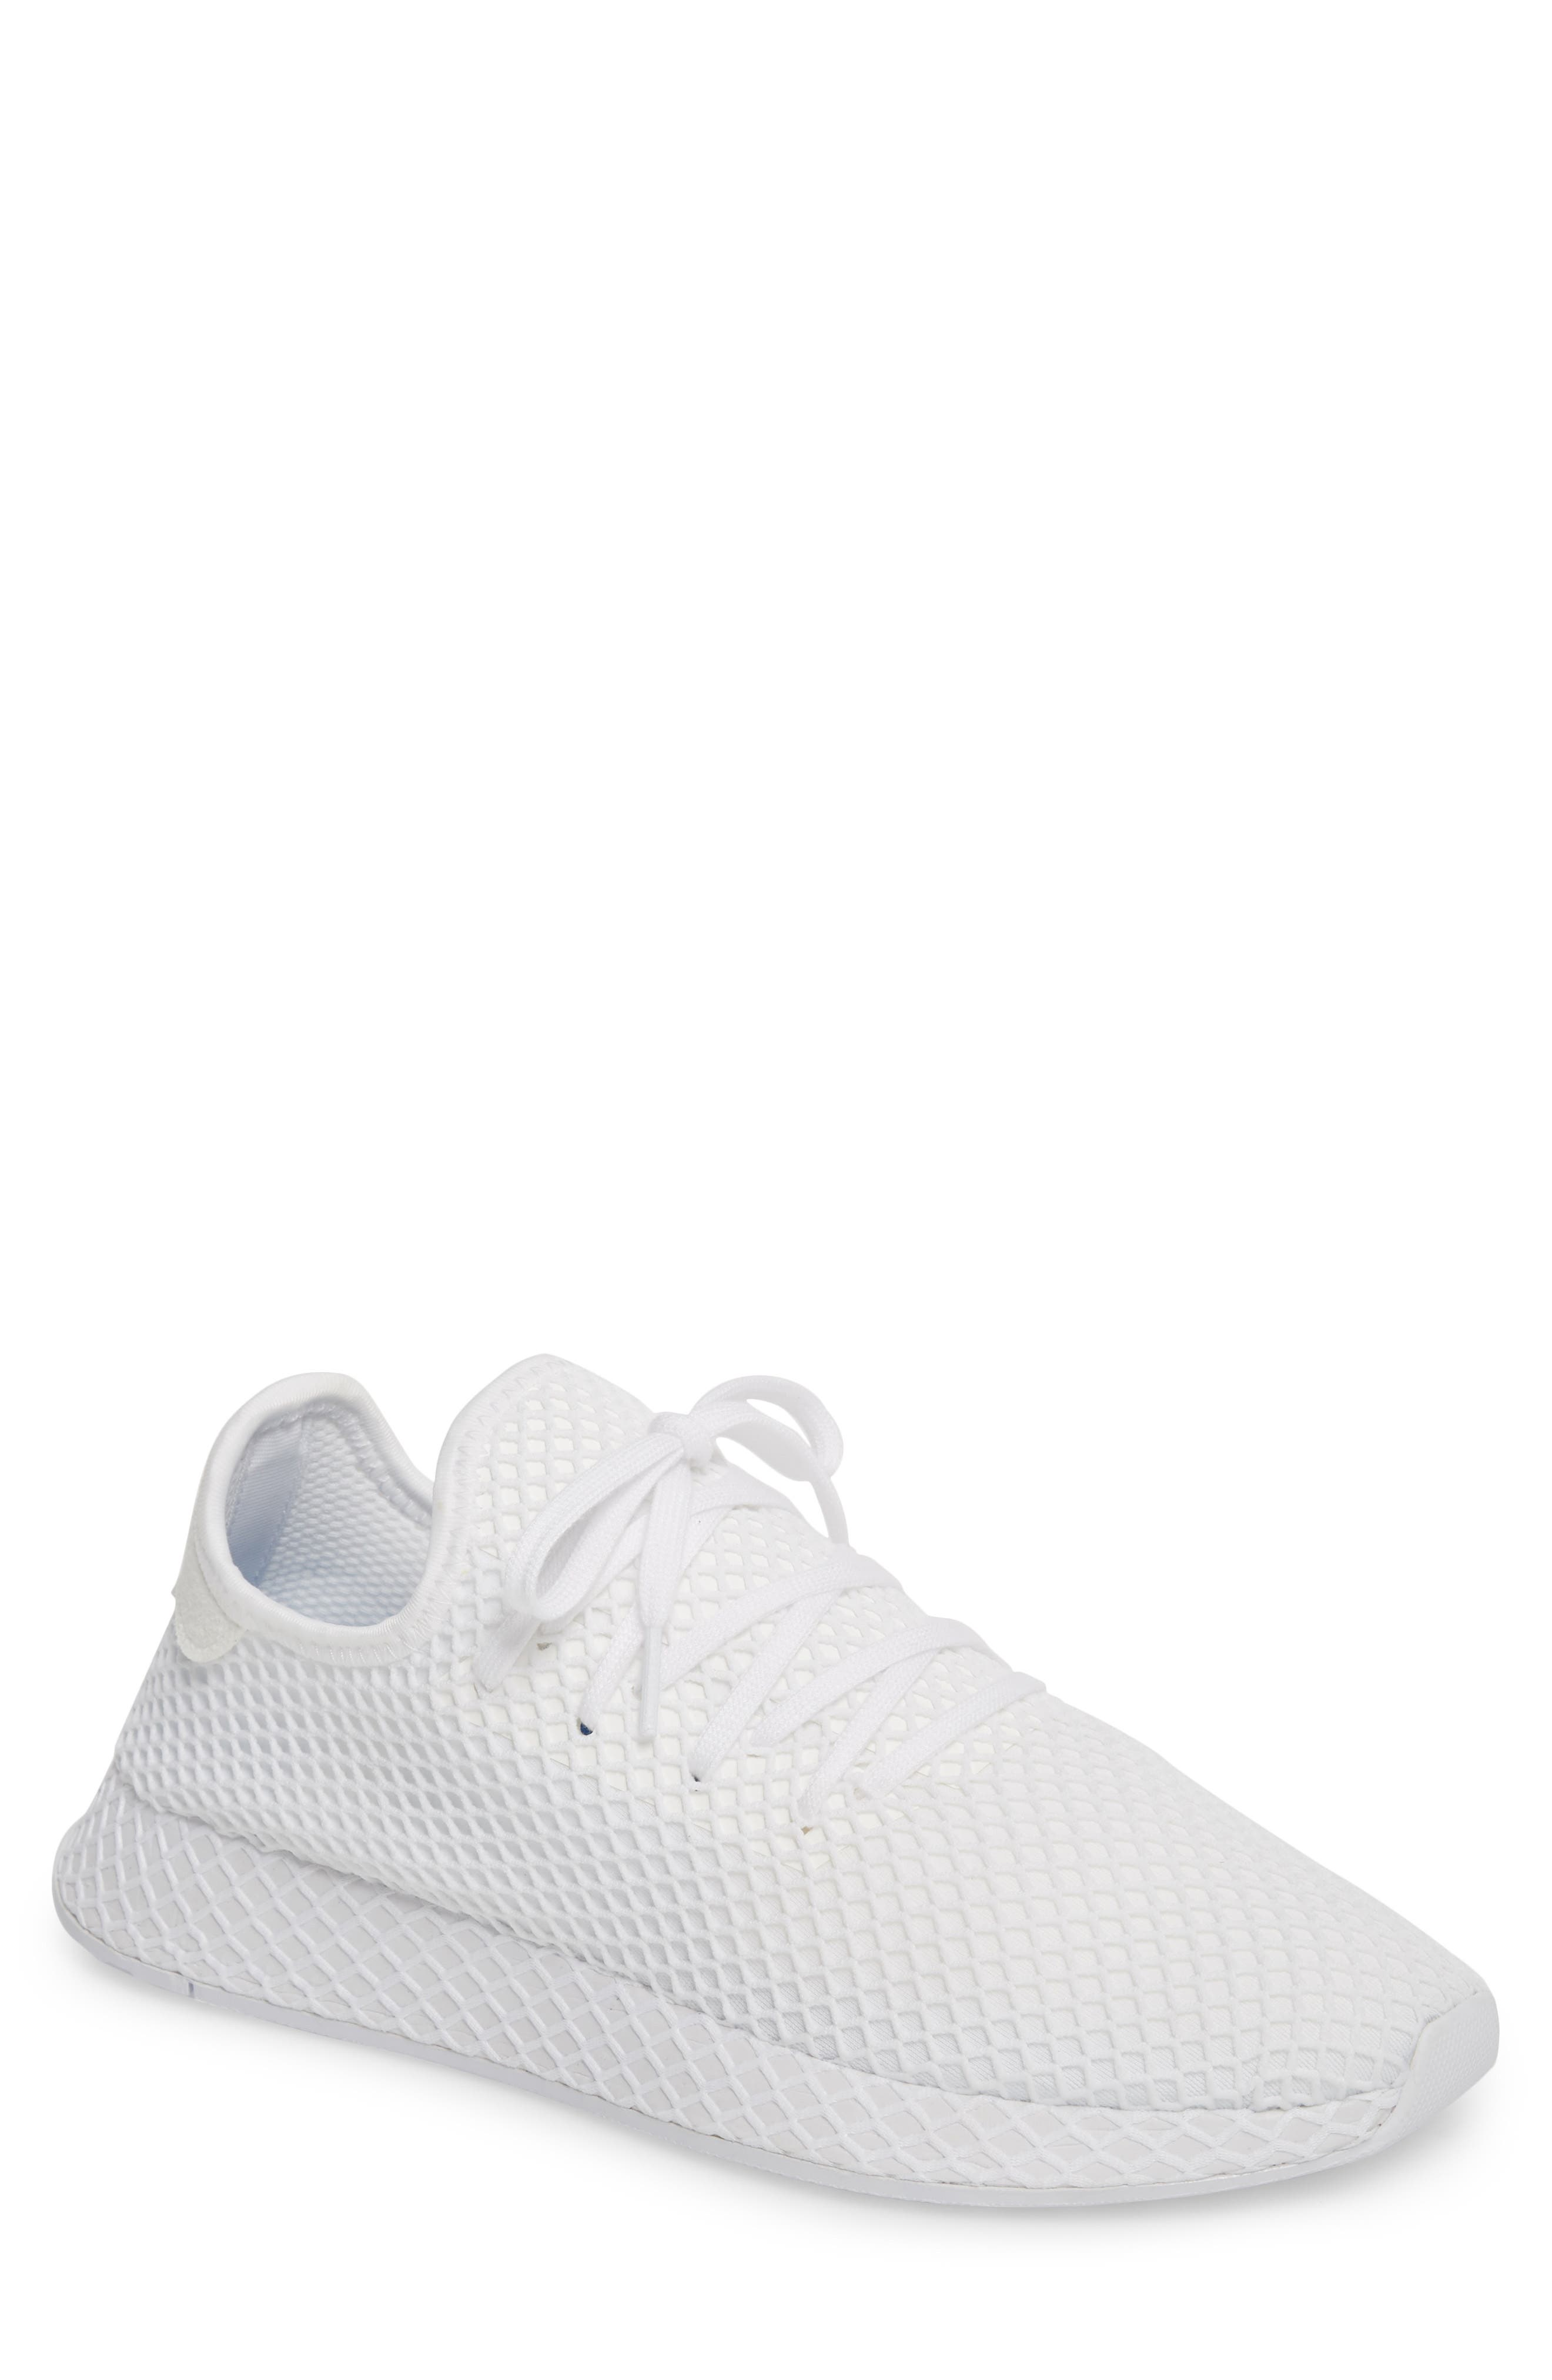 Deerupt Runner Sneaker,                             Main thumbnail 1, color,                             100